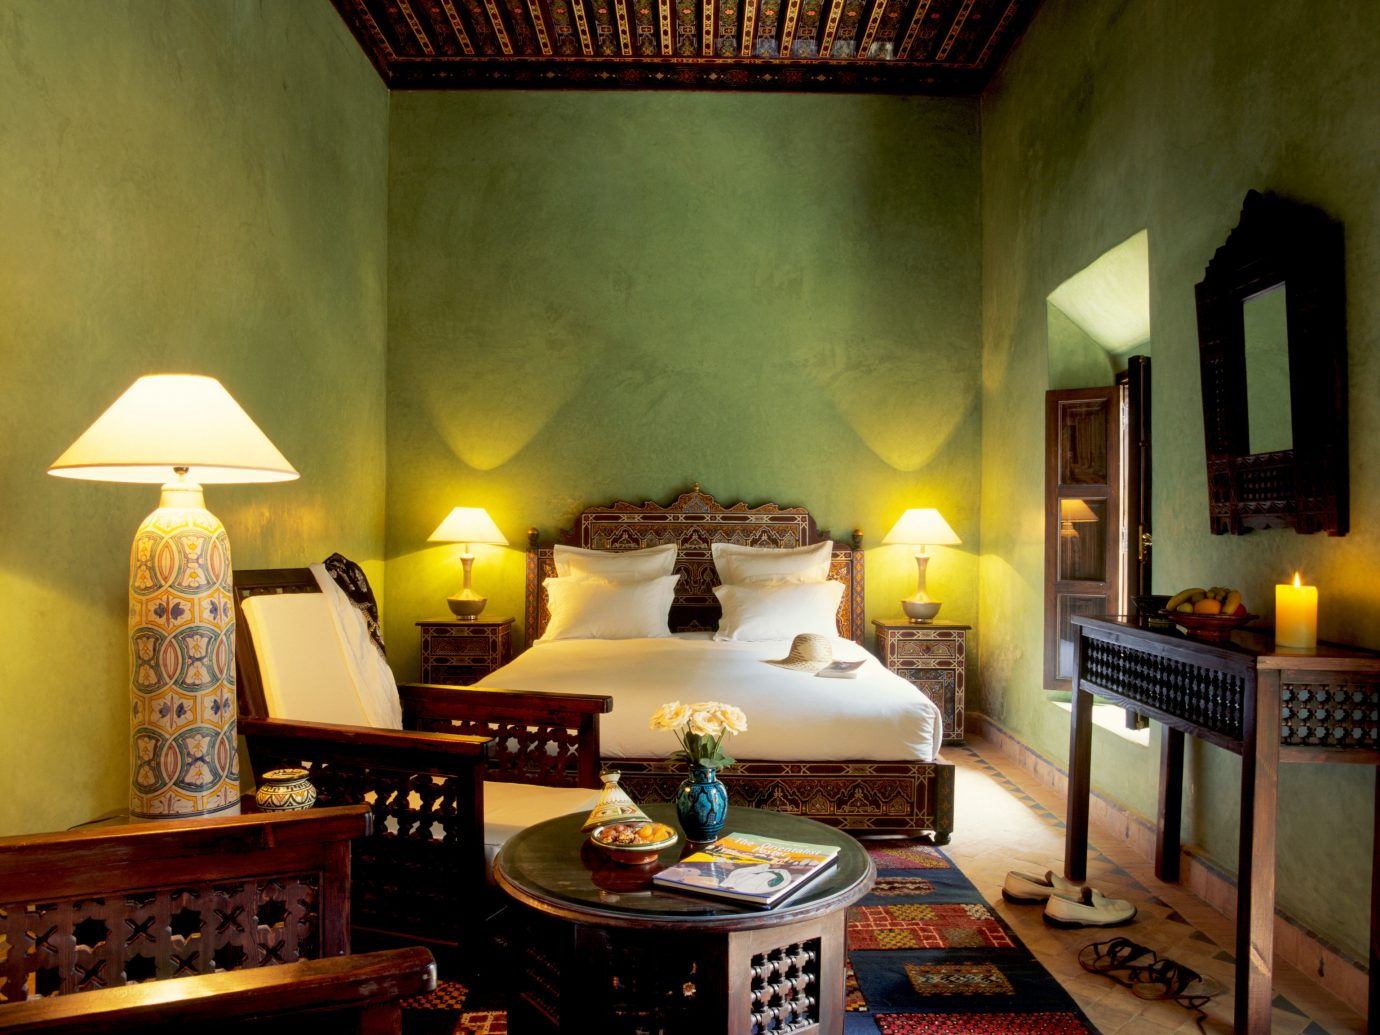 Bedroom at Dar Les Cigognes, Marrakech, Morocco